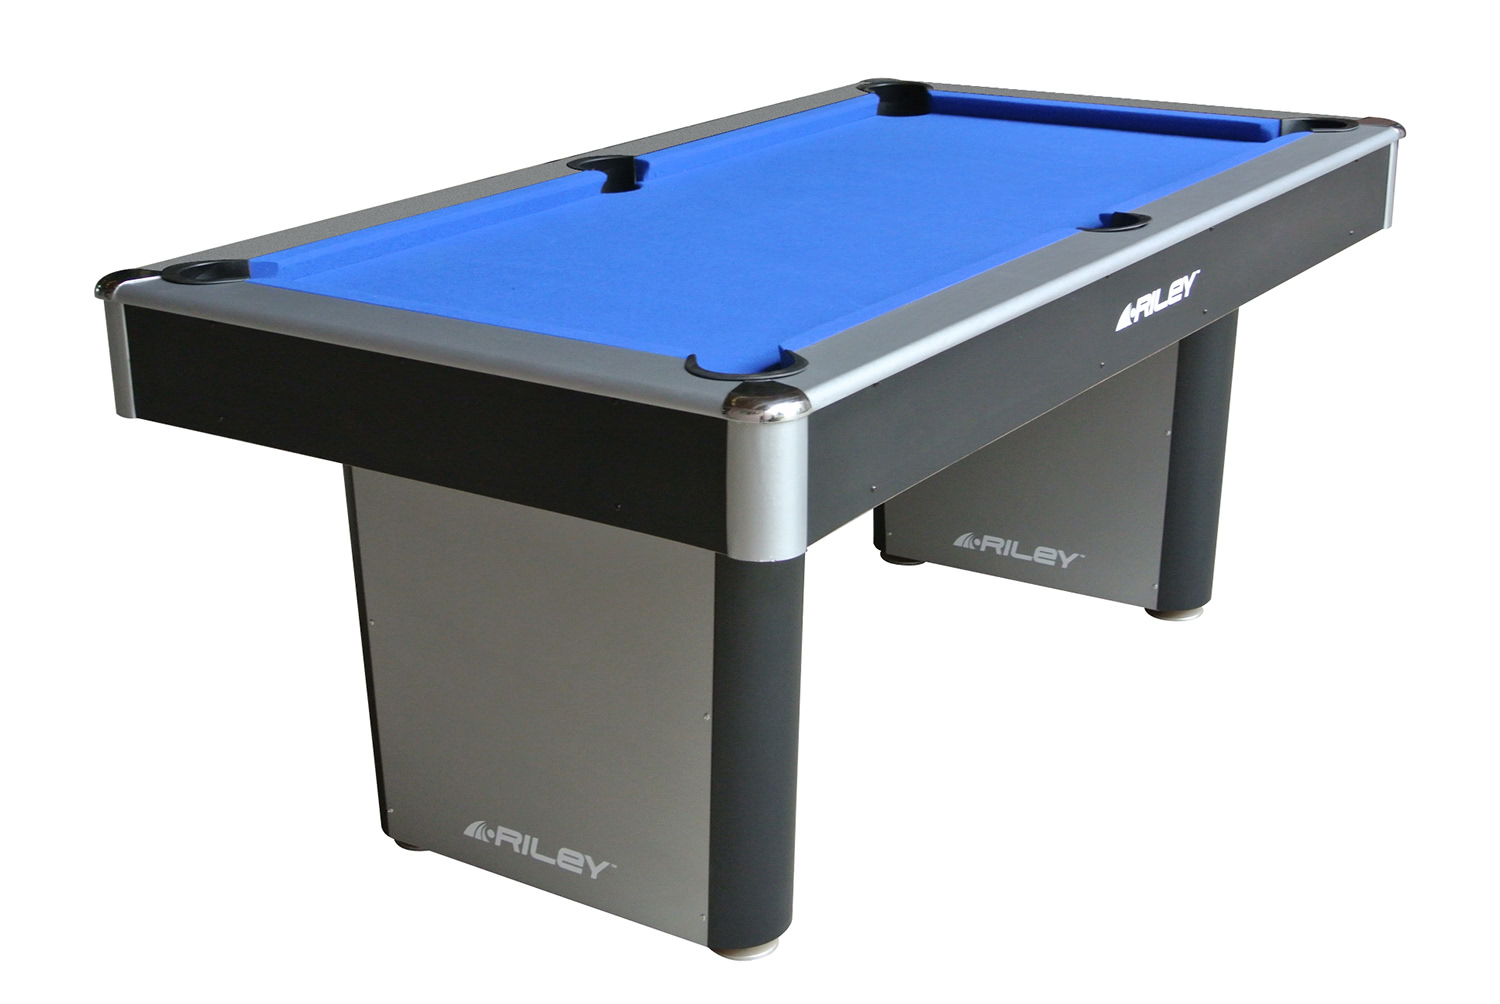 Riley pool table jl 2c liberty games for Table 6 foot